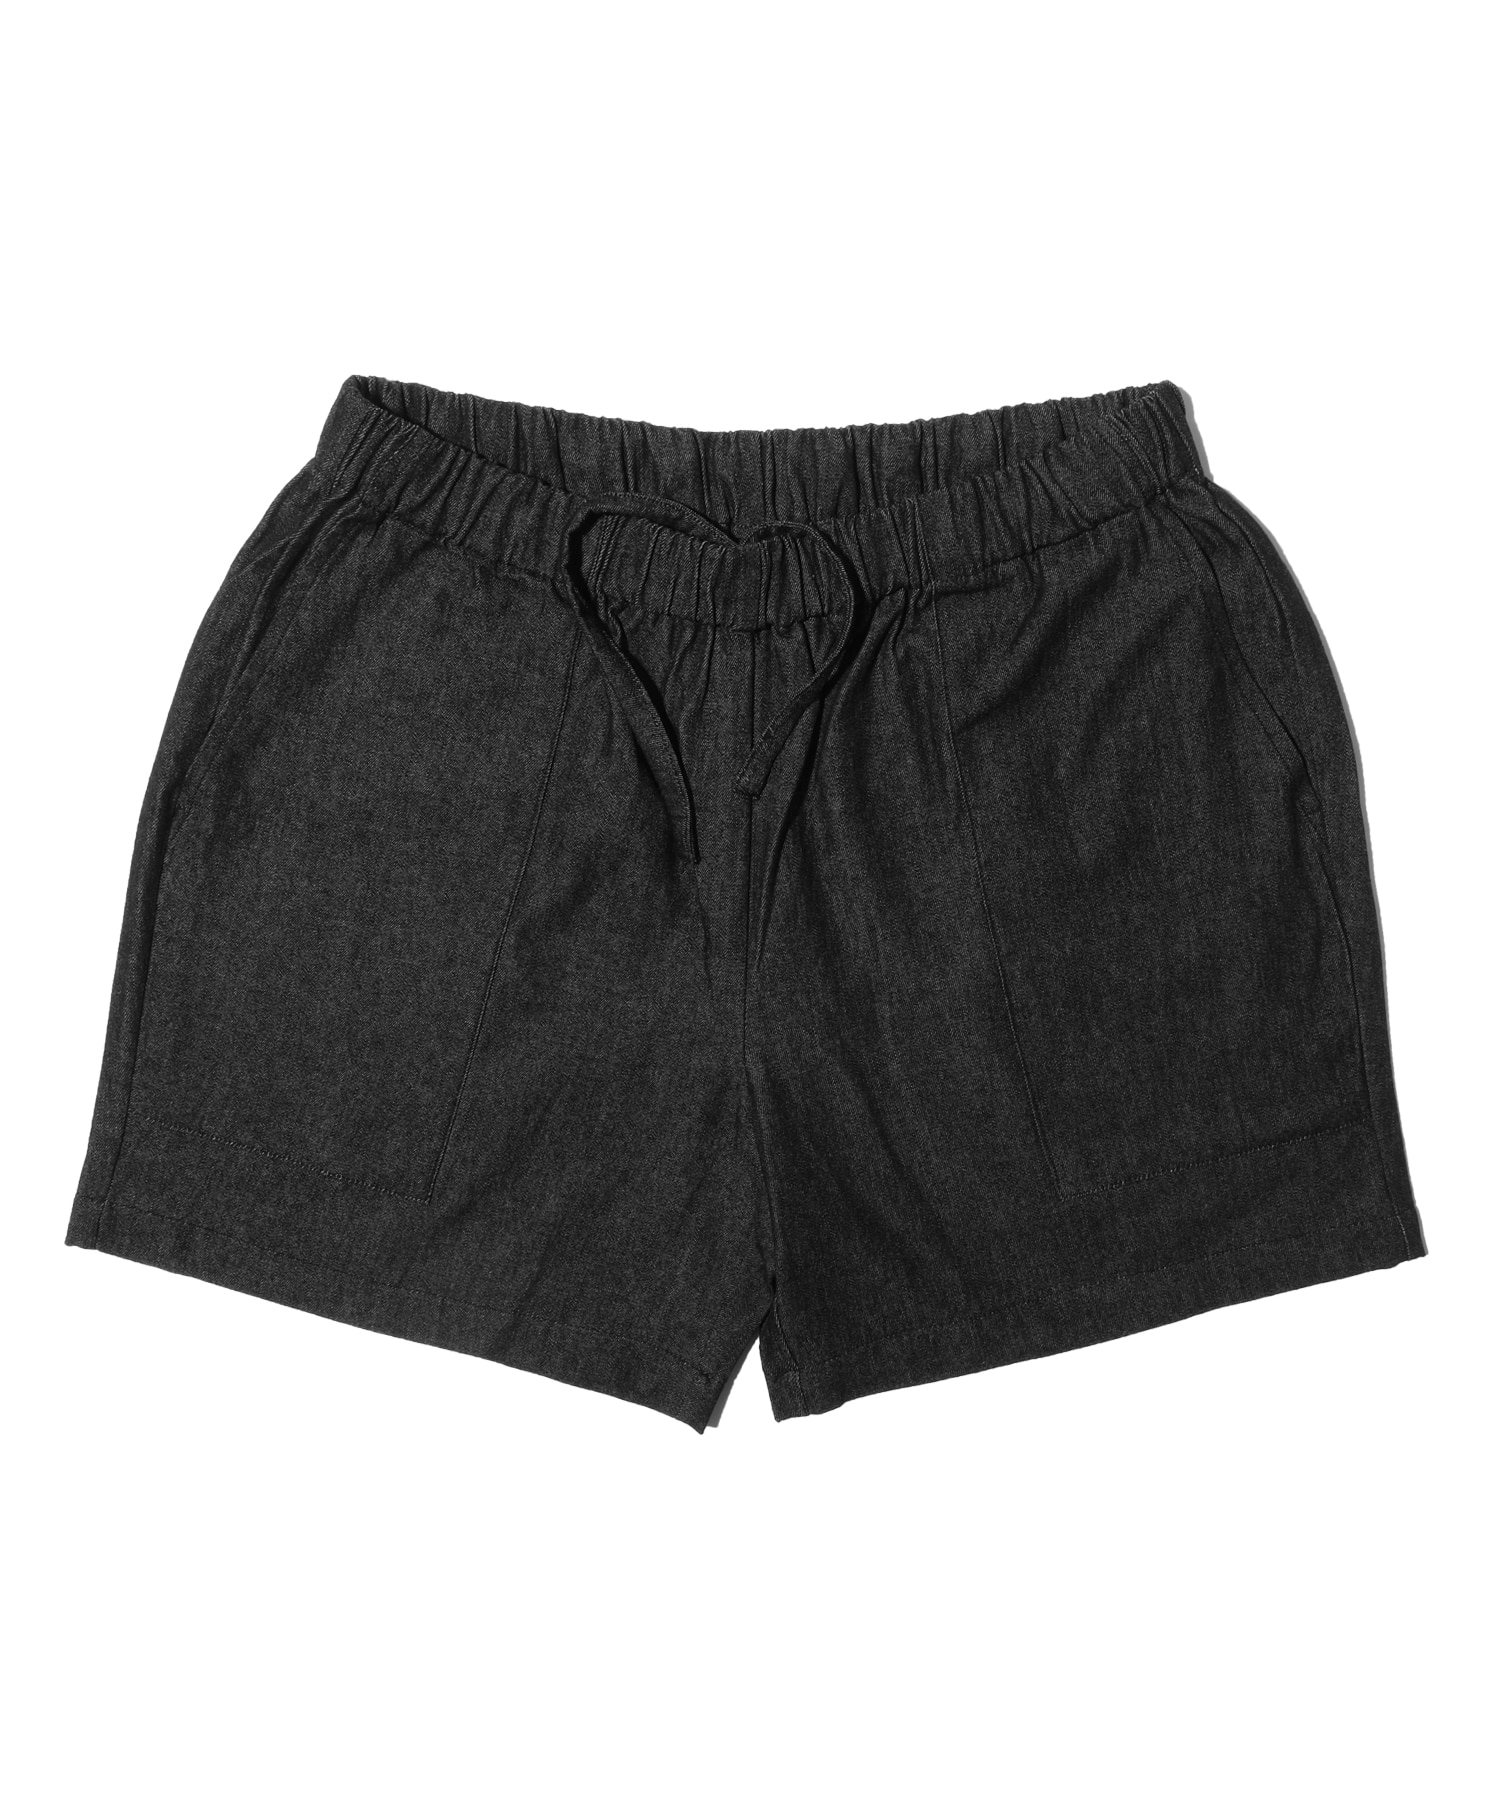 해버대셔리 CHAMBRAY BEACH SHORTS_Black